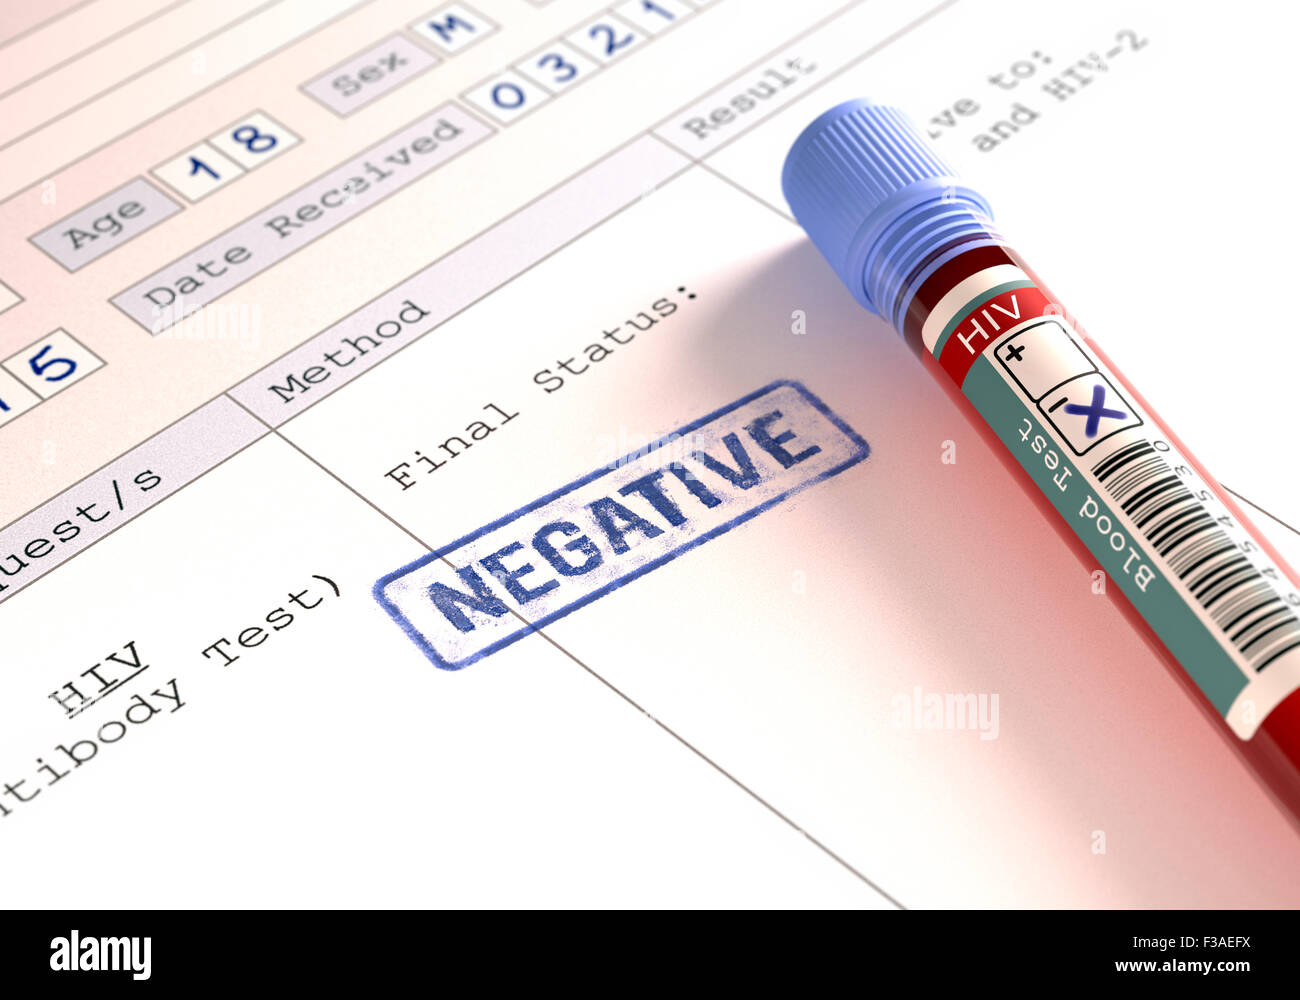 Hiv positive Person dating hiv negative Person